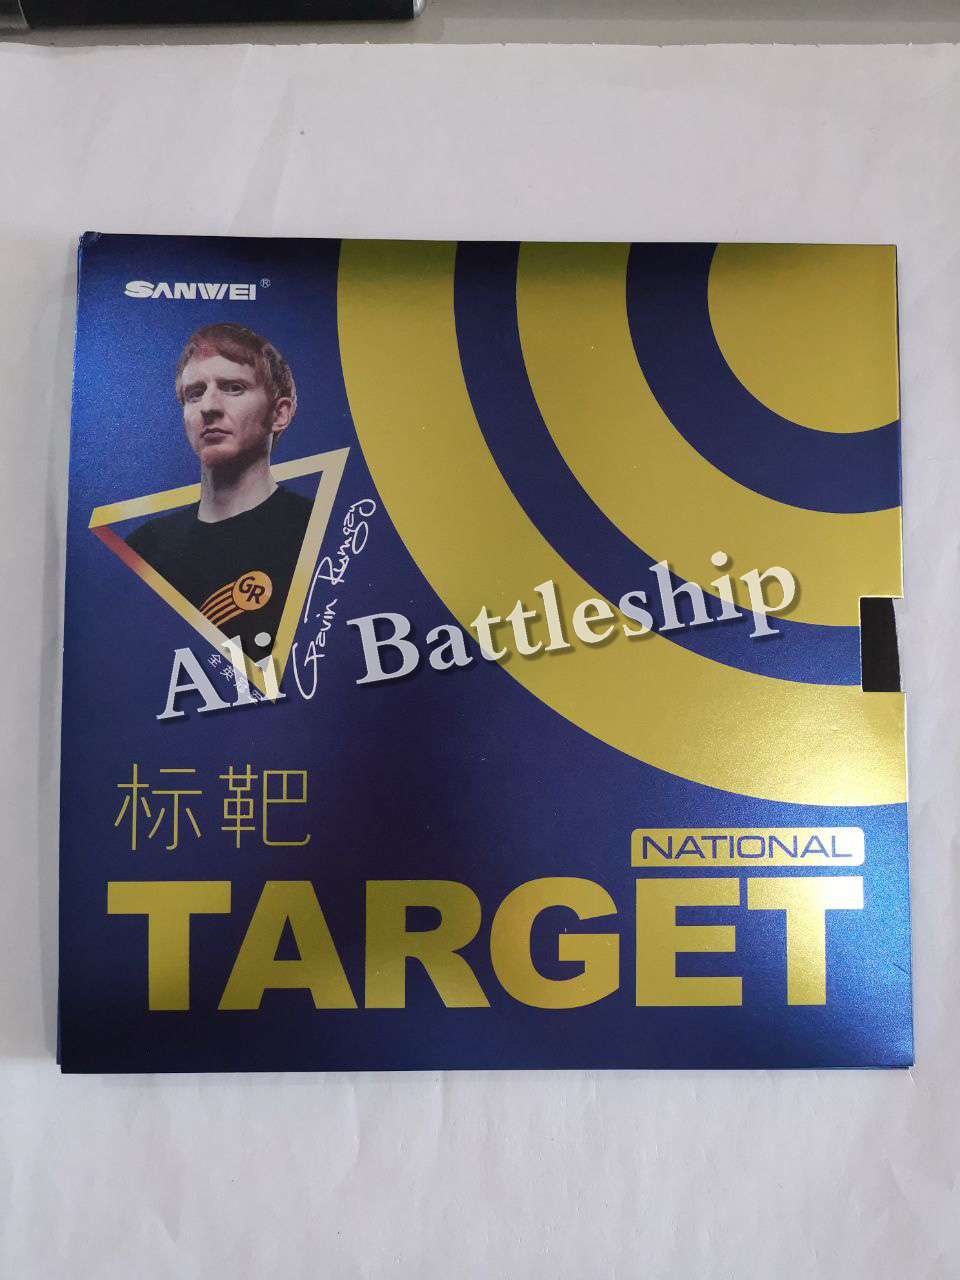 Original Sanwei TARGET (National) Pips-in Table Tennis Rubber (Blue Sponge)